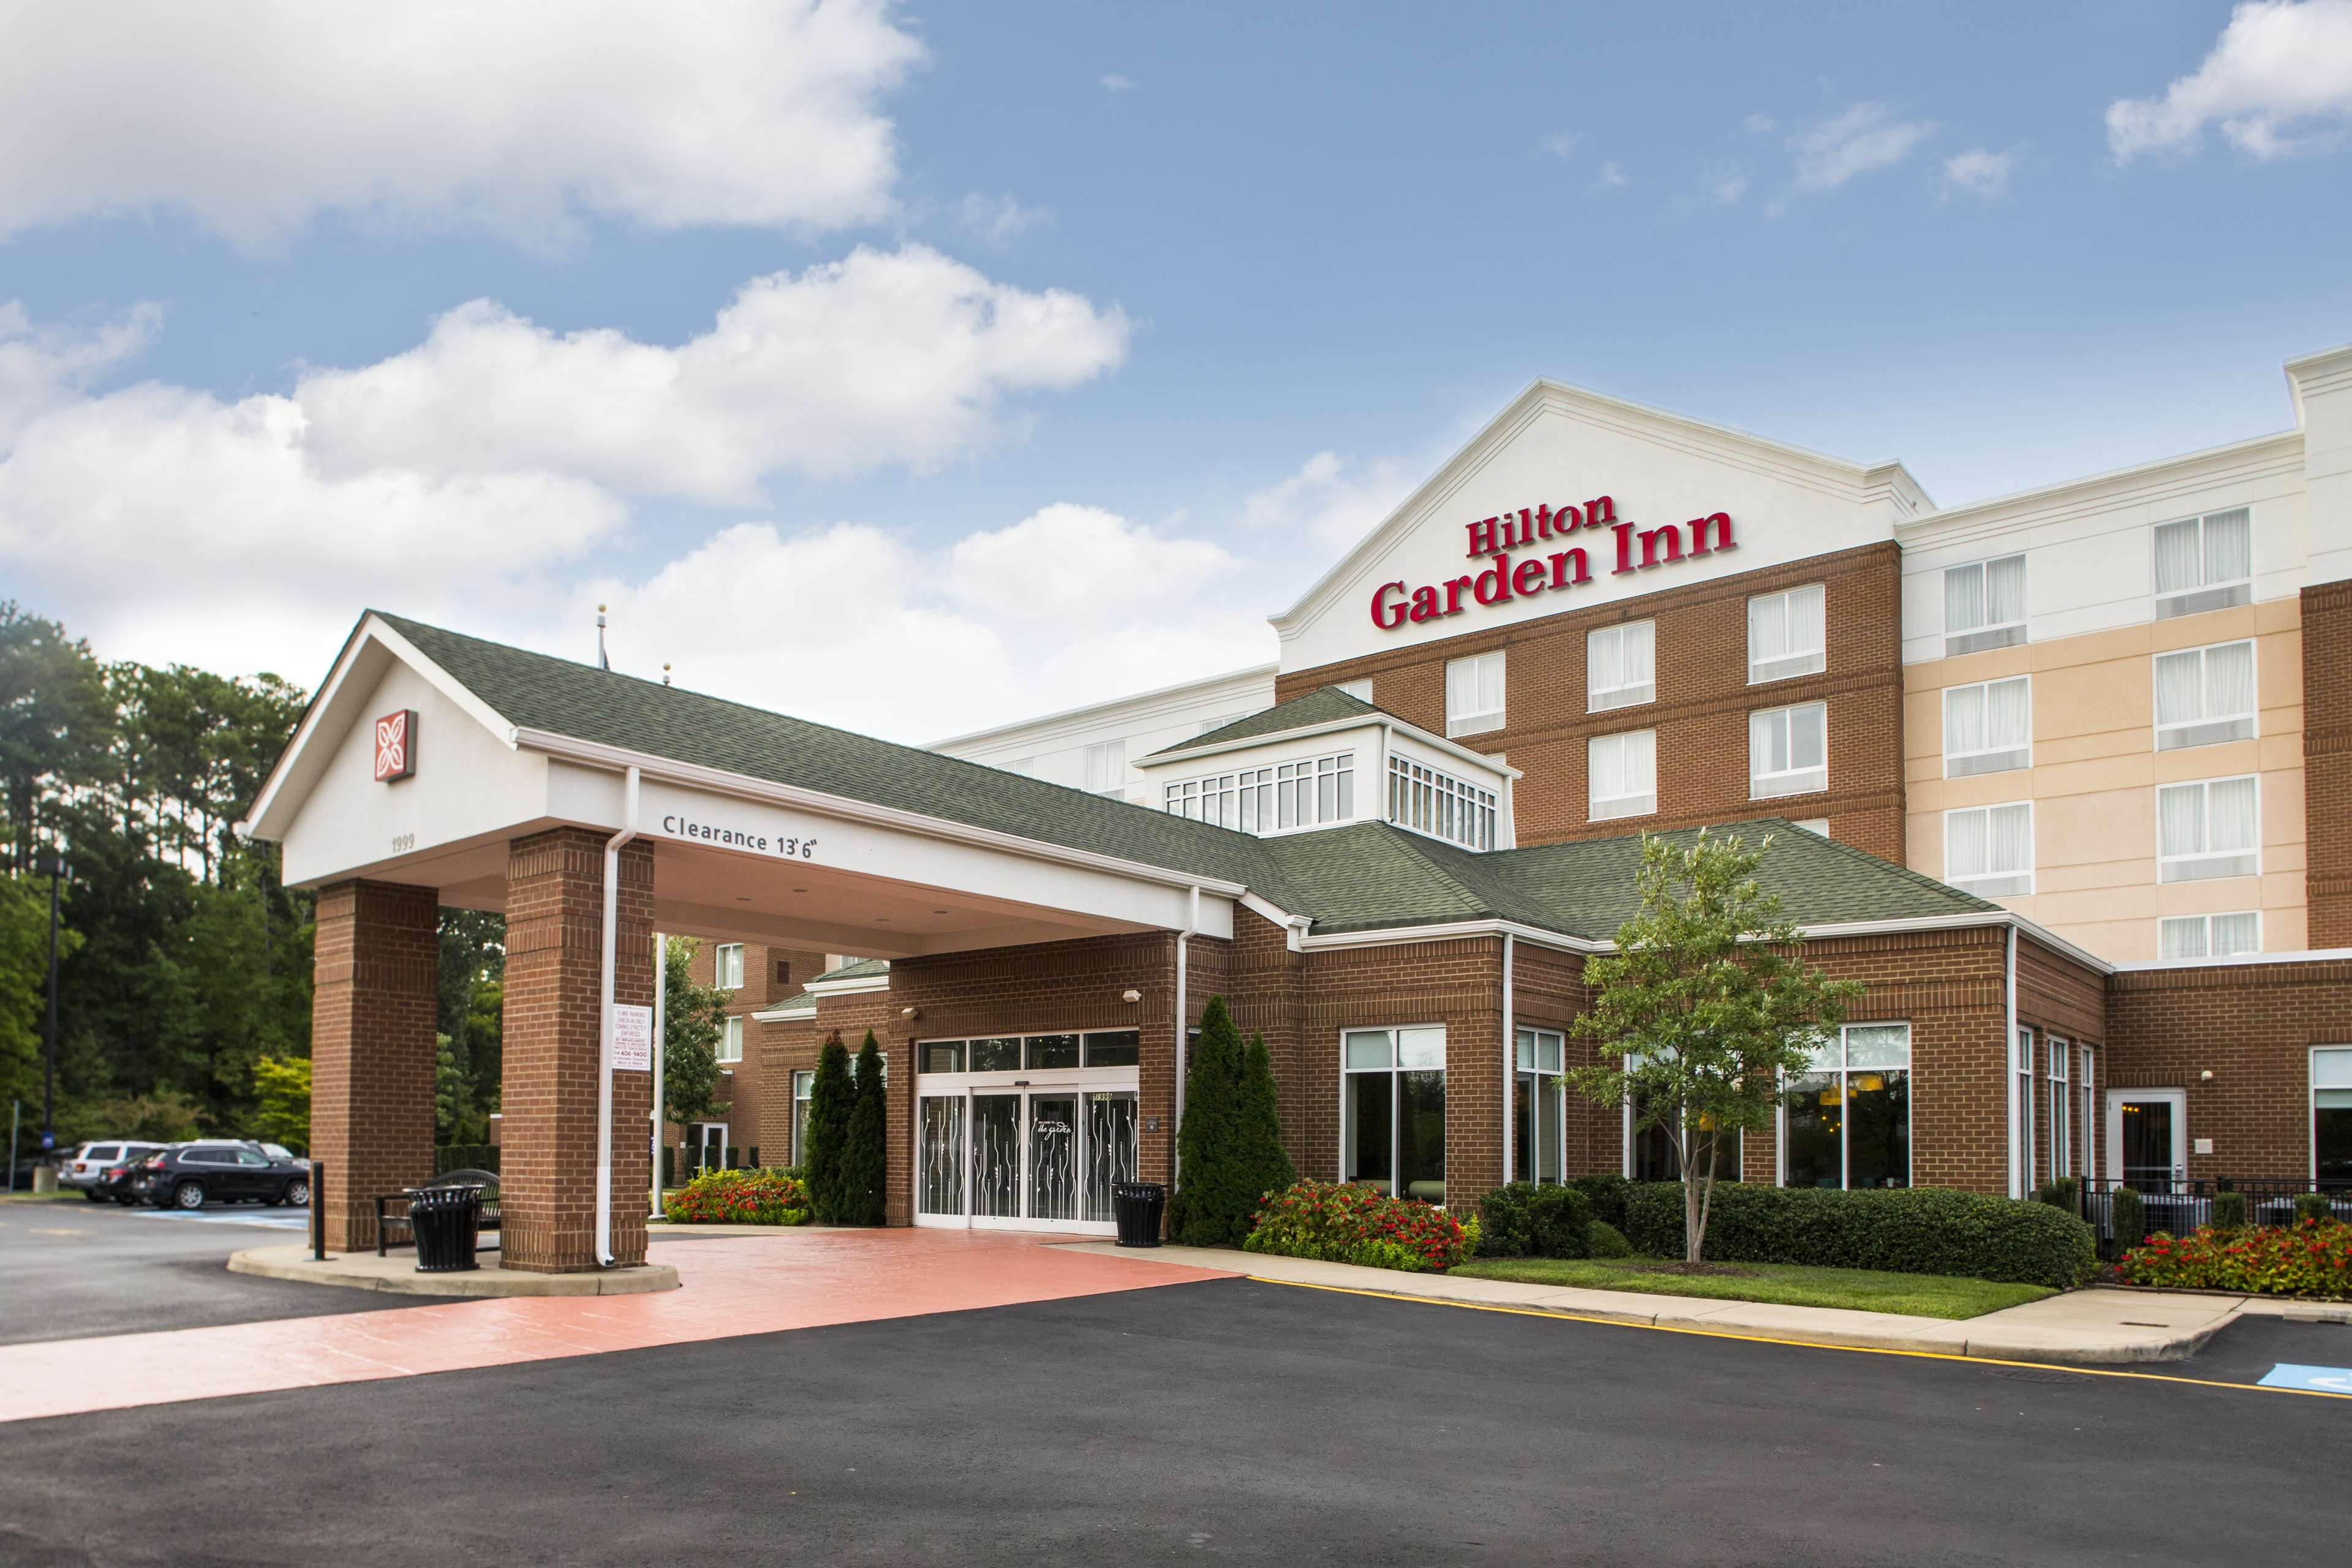 Hilton garden inn hampton coliseum central 1999 power - Hilton garden inn hampton coliseum central ...